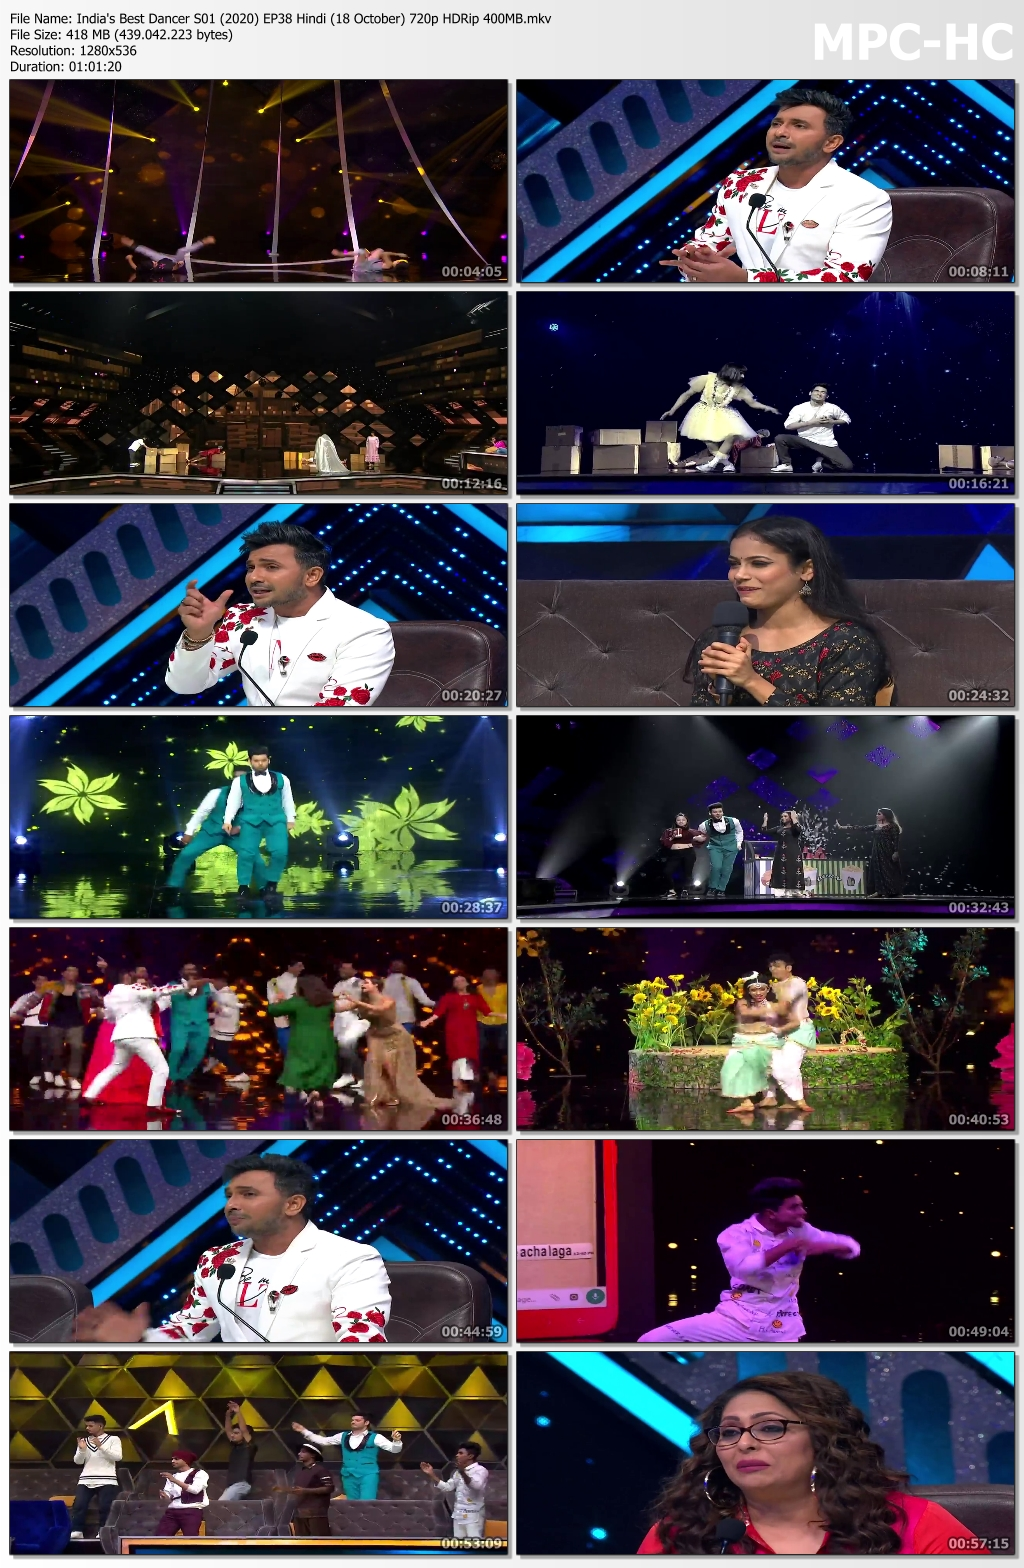 India-s-Best-Dancer-S01-2020-EP38-Hindi-18-October-720p-HDRip-400-MB-mkv-thumbs